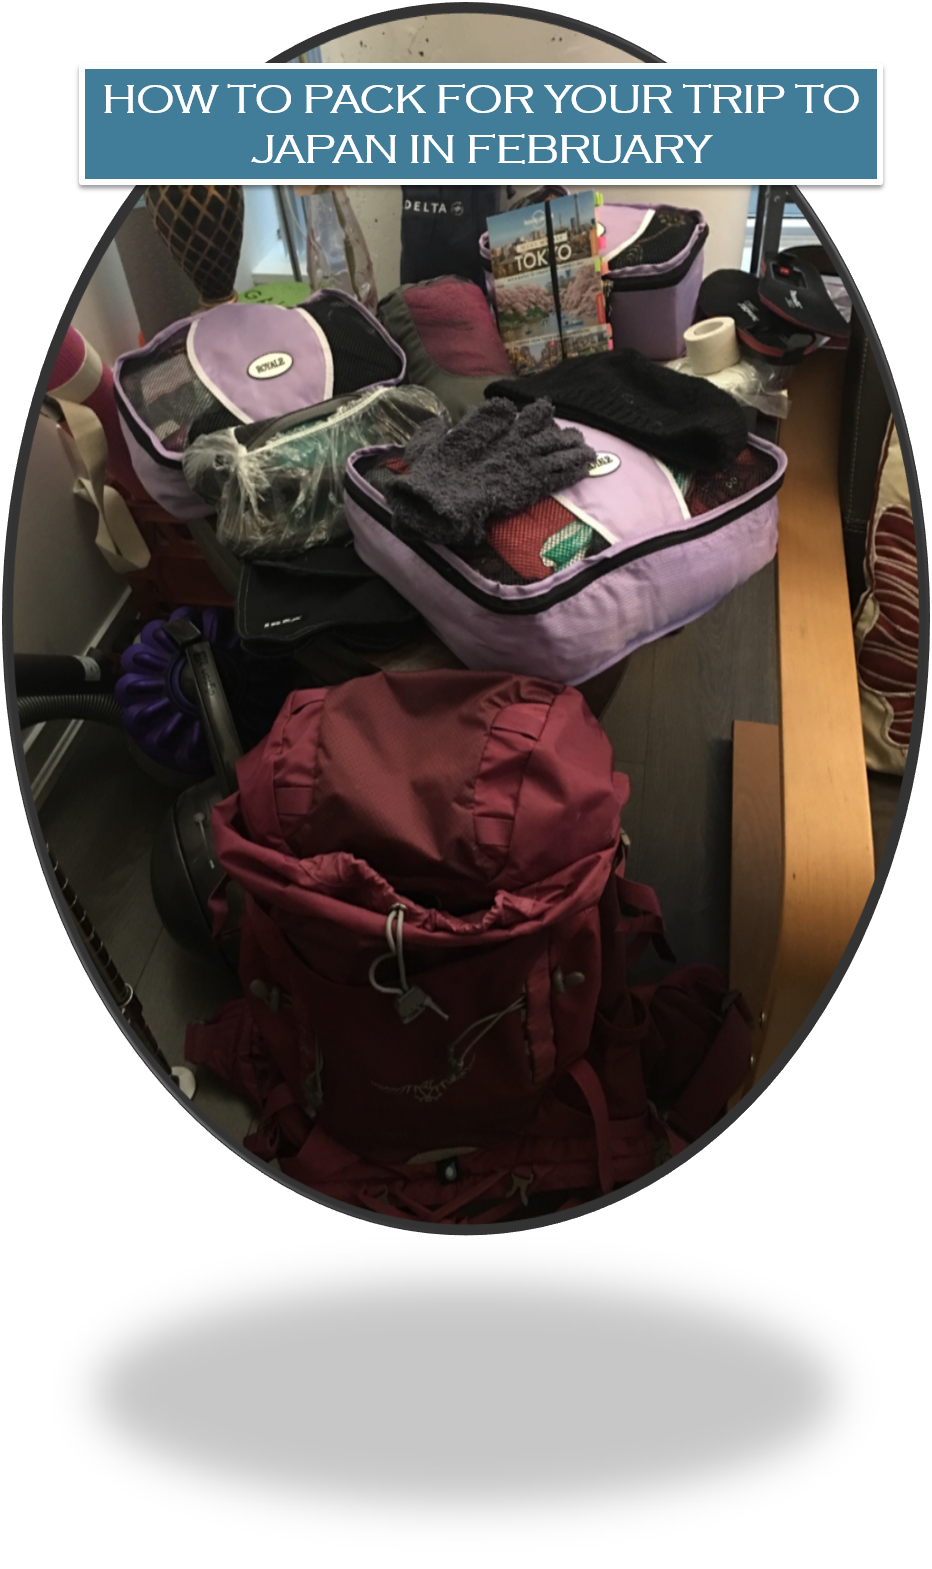 HOW TO PACK FOR YOUR TRIP TO JAPAN IN FEBRUARY